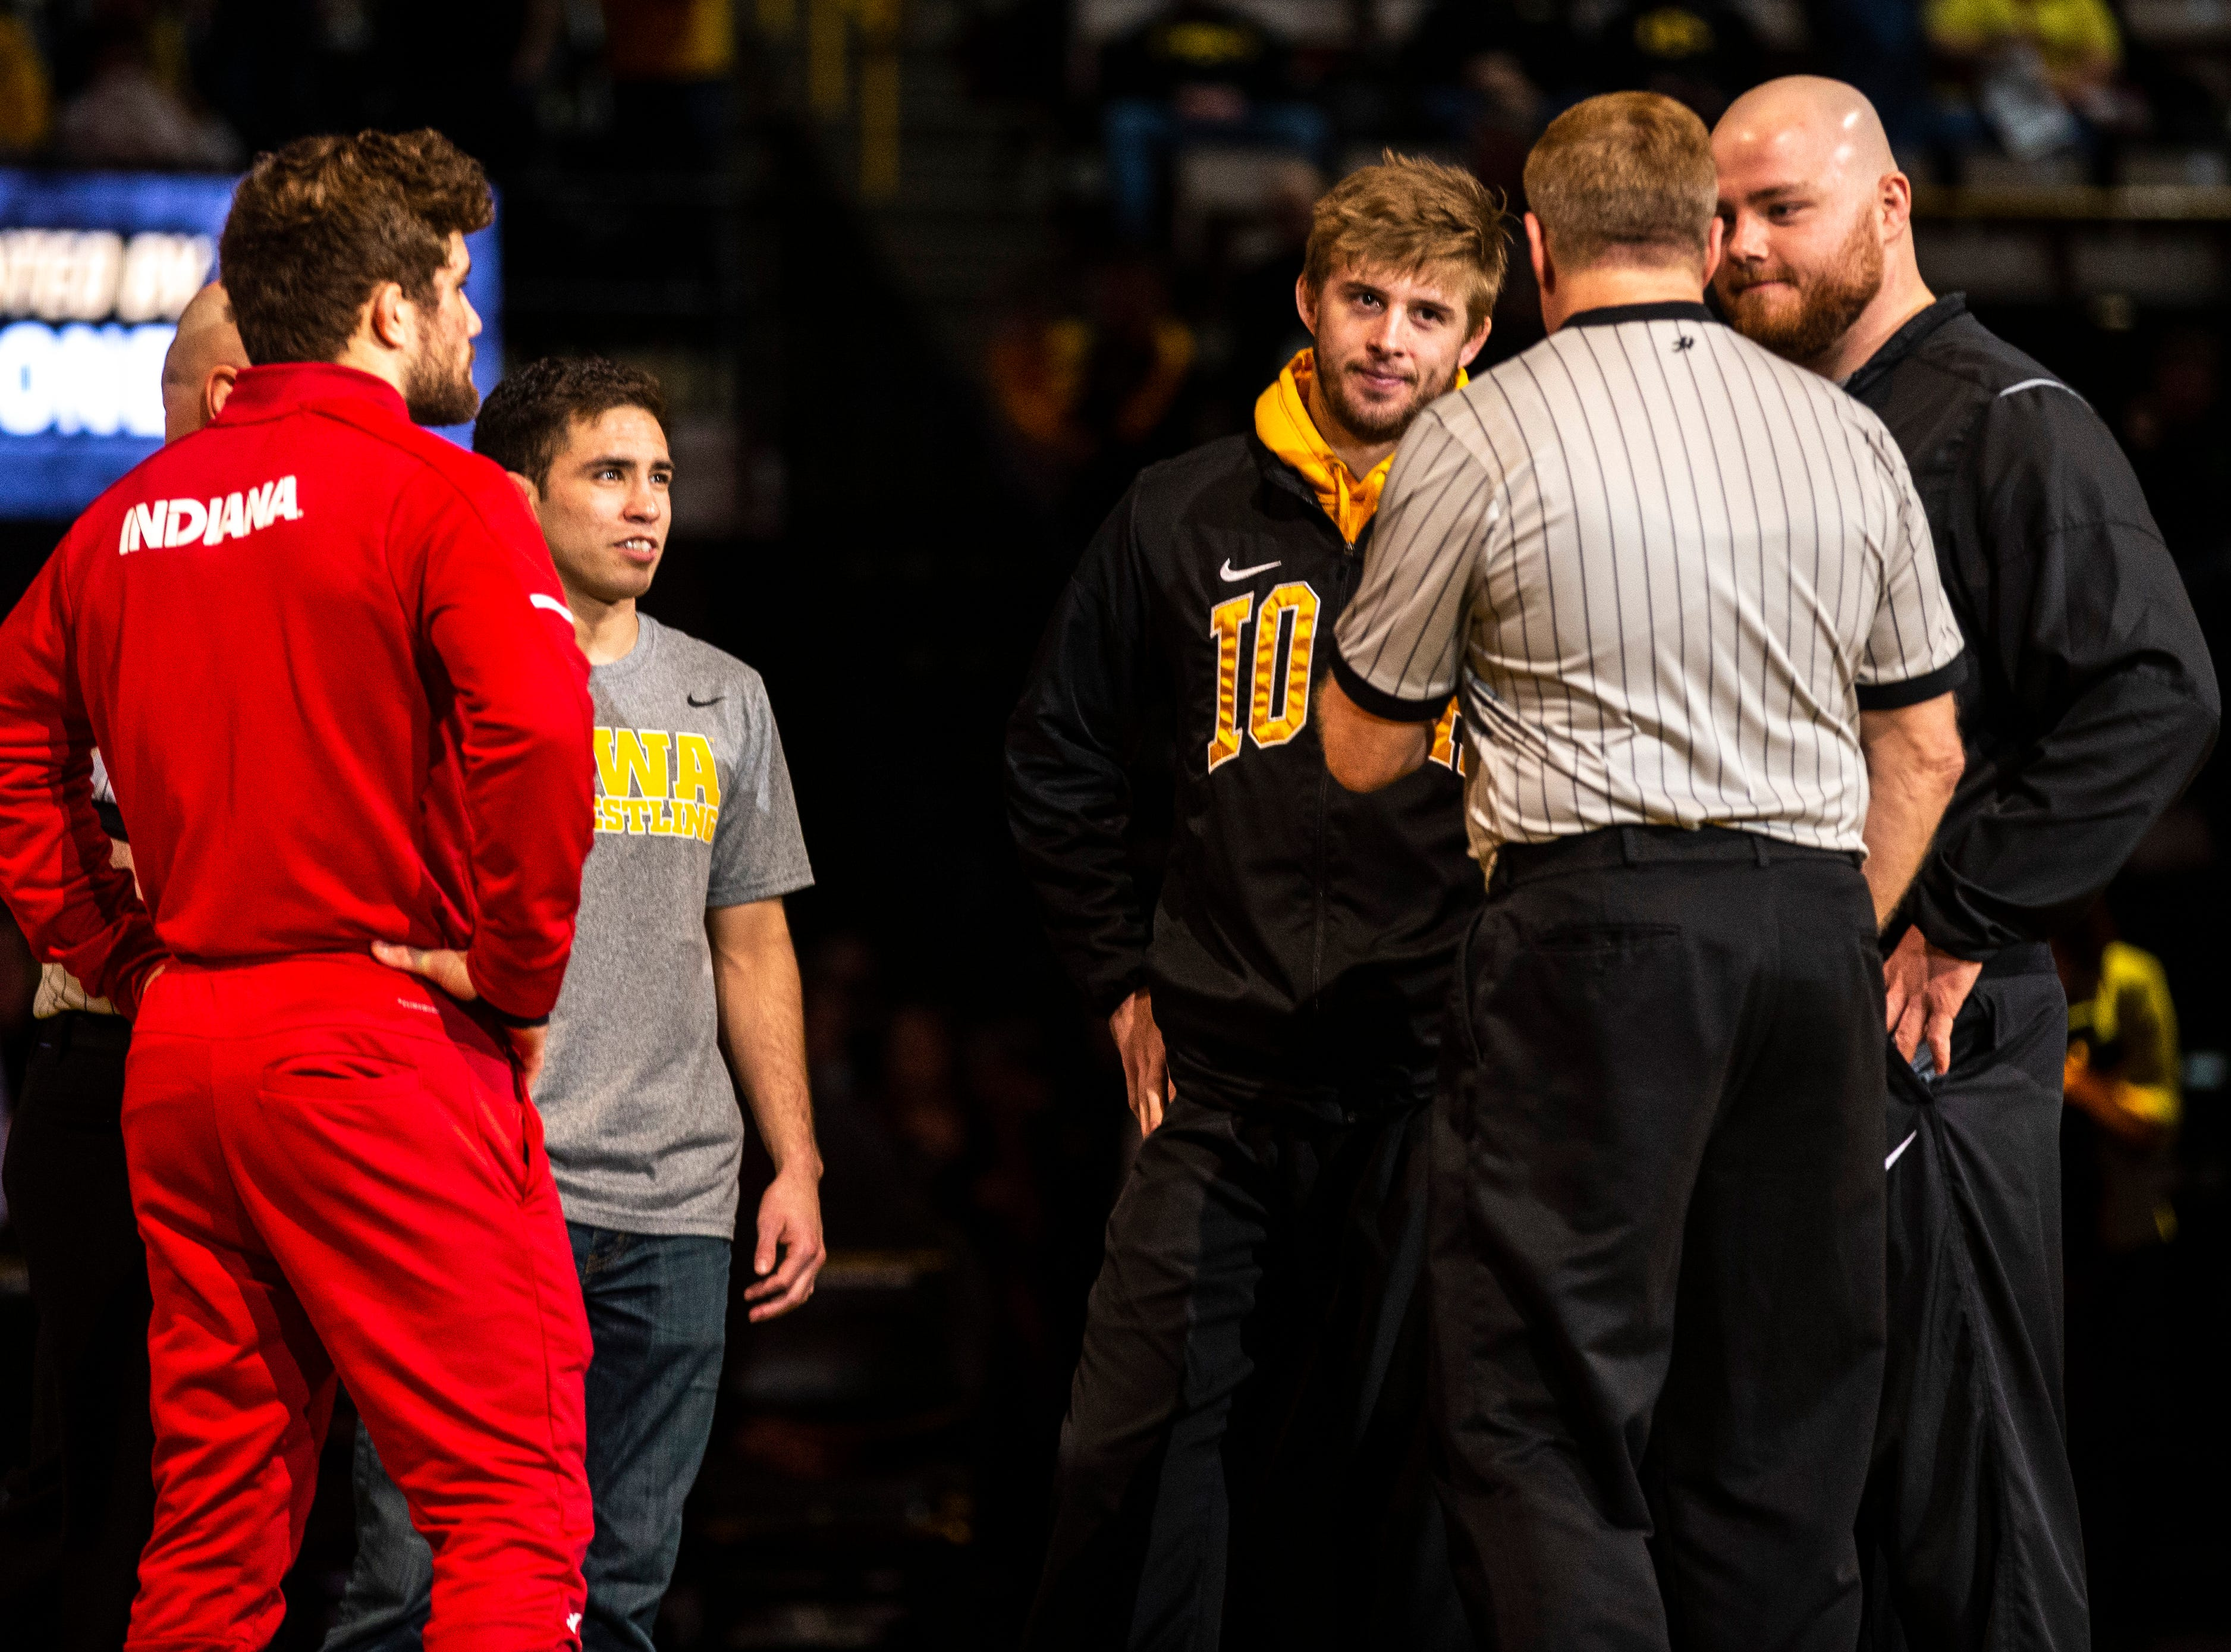 Iowa seniors Perez Perez, Mitch Bowman and Sam Stoll head to the mat as captains during a NCAA Big Ten Conference wrestling dual against Indiana on Friday, Feb. 15, 2019 at Carver-Hawkeye Arena in Iowa City, Iowa.